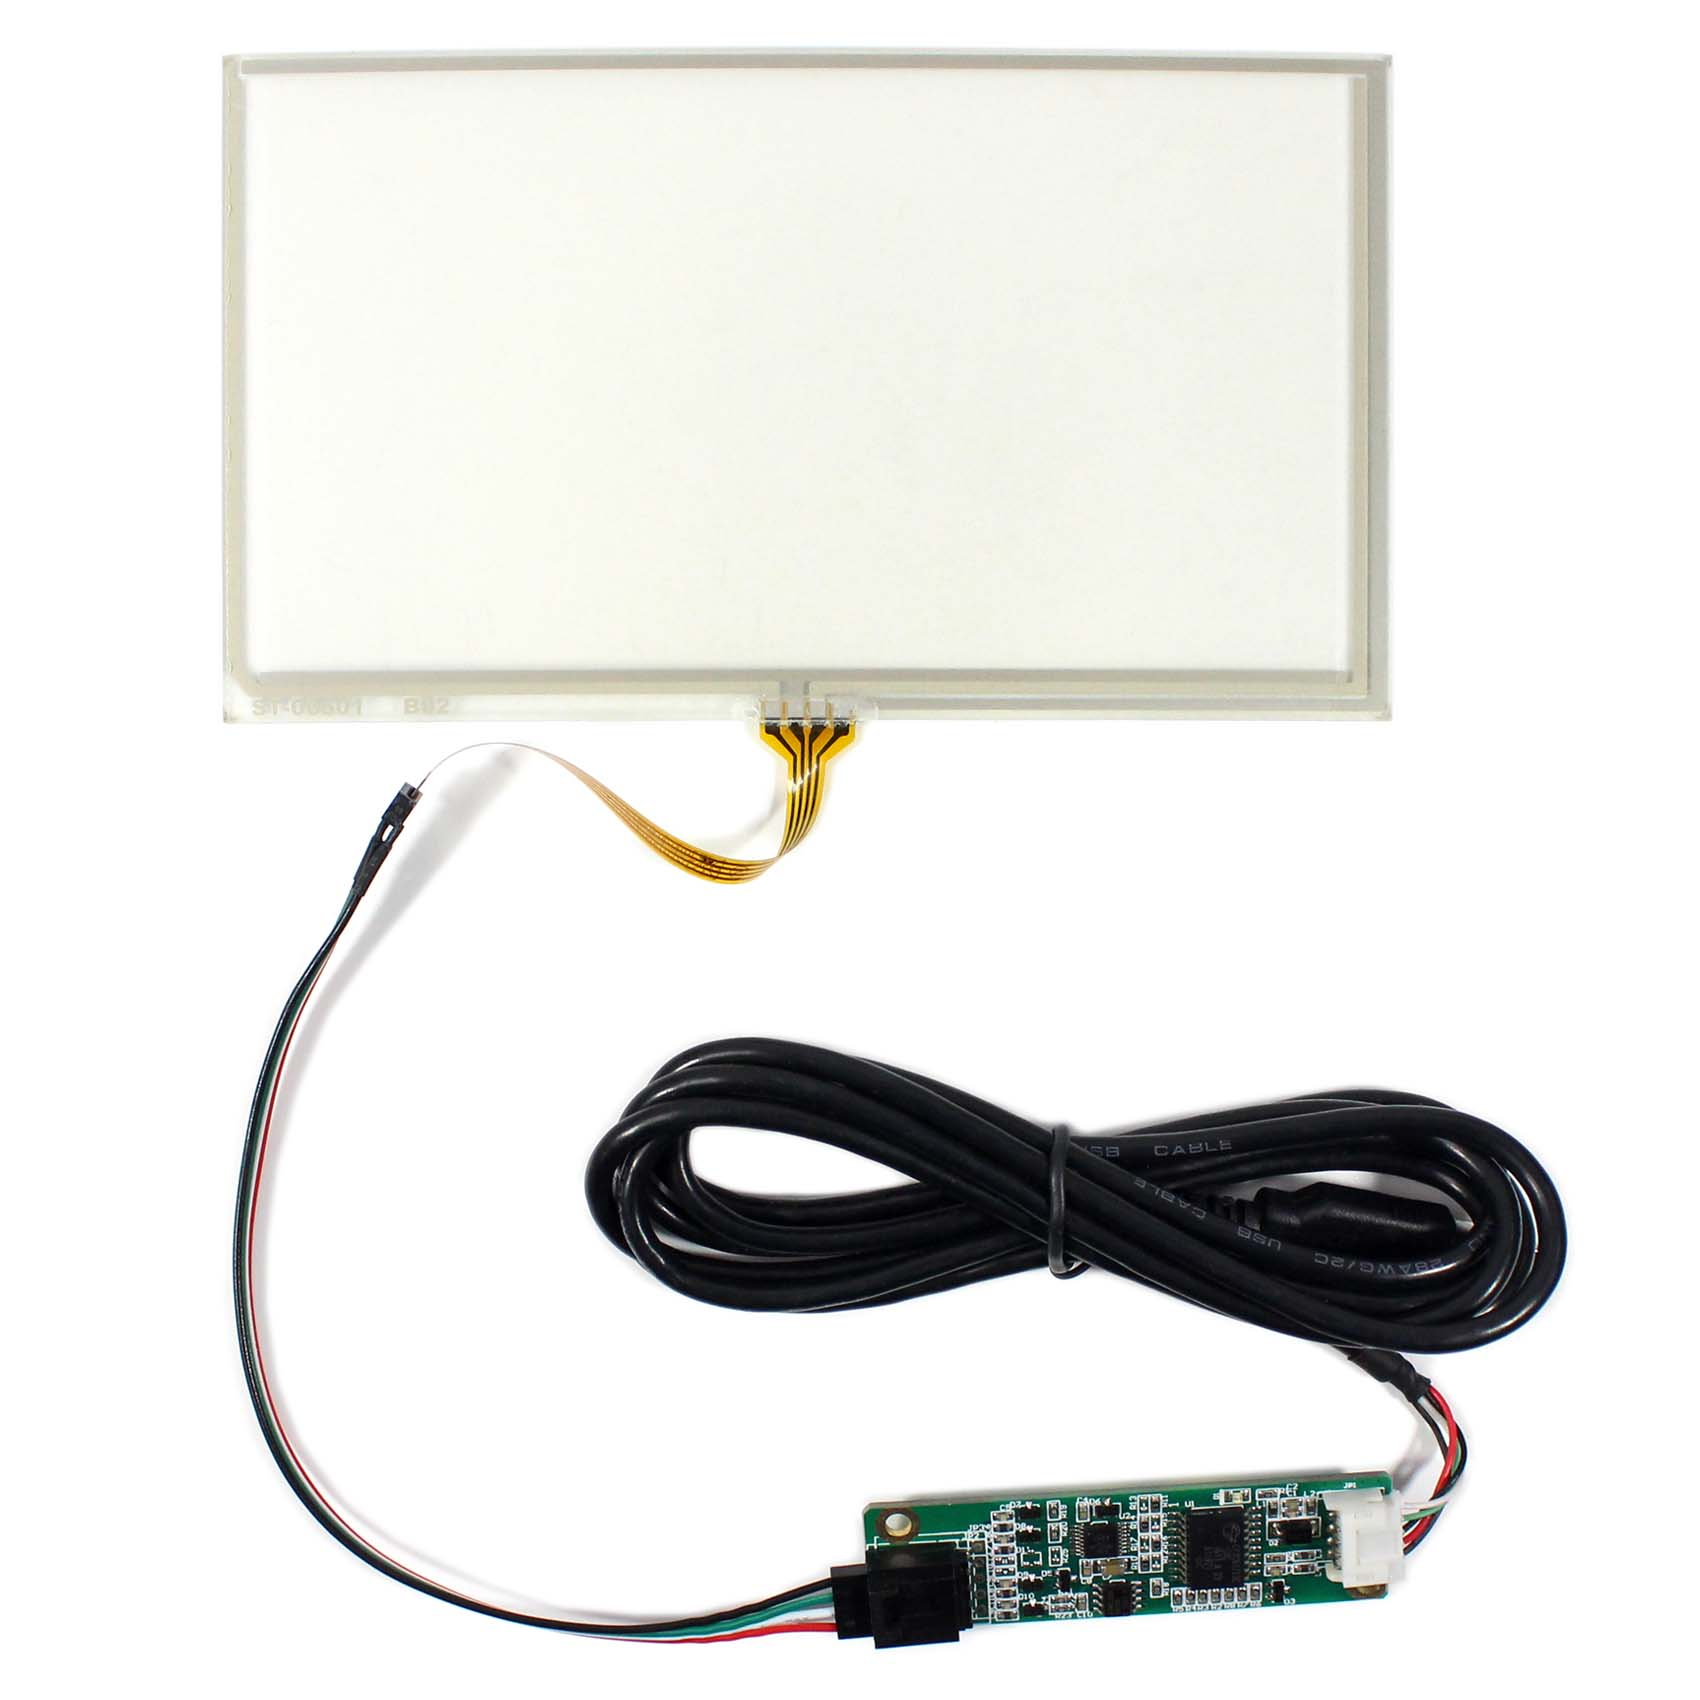 6.5inch Resistive Touch screen for 6.5inch 800x480 Lcd panel USB Controller